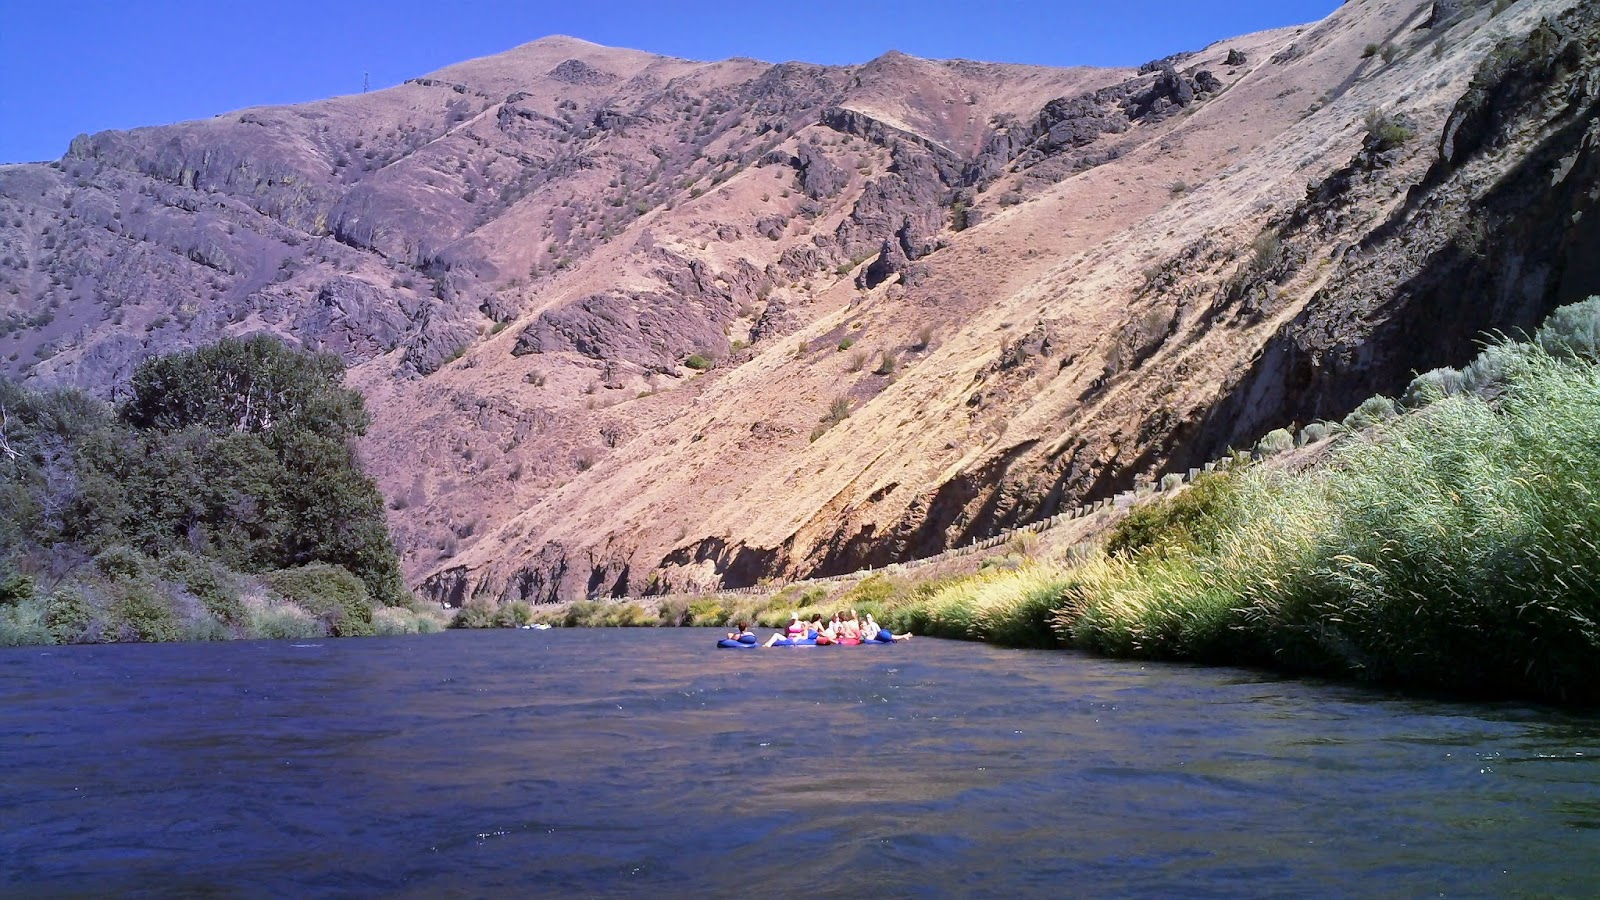 Tubing on the Yakima in Washington State